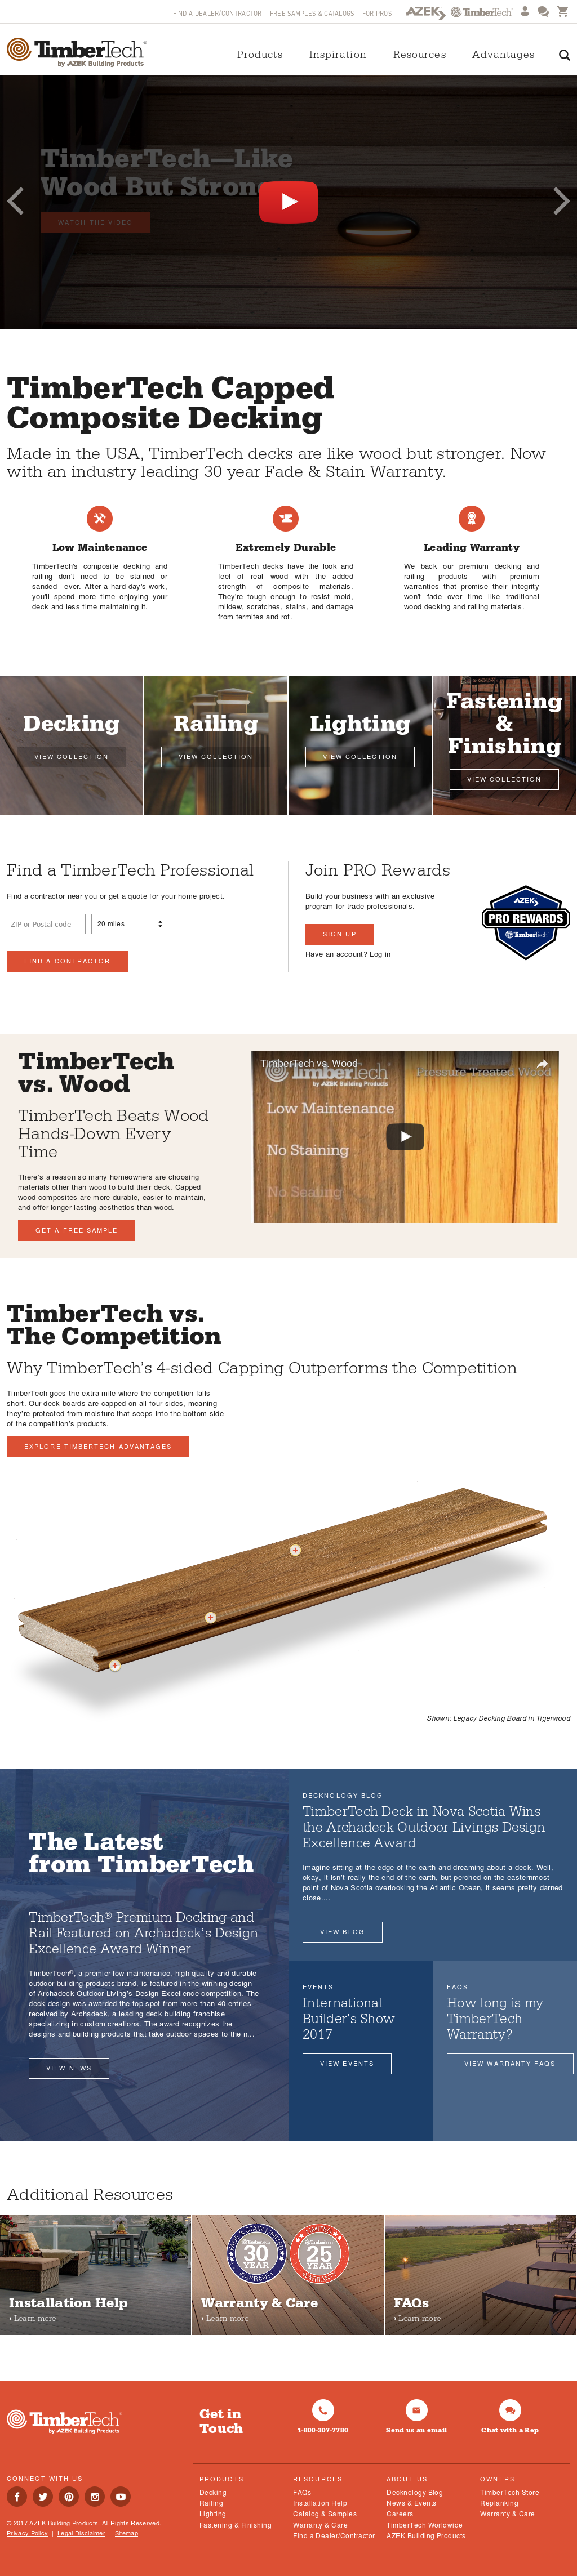 TimberTech Competitors, Revenue and Employees - Owler